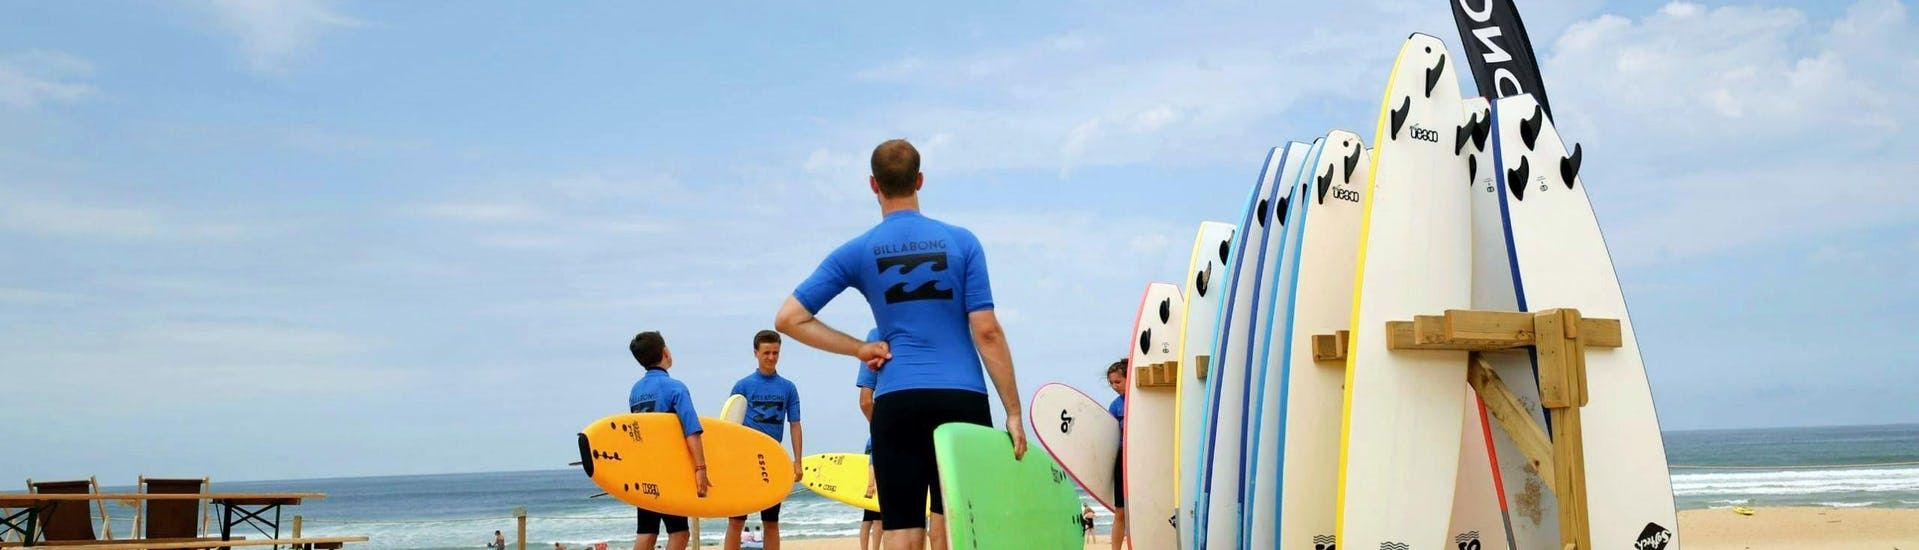 Participants are getting ready for their surfing lessons with the ESCF Anglet-Seignosse surf schools.